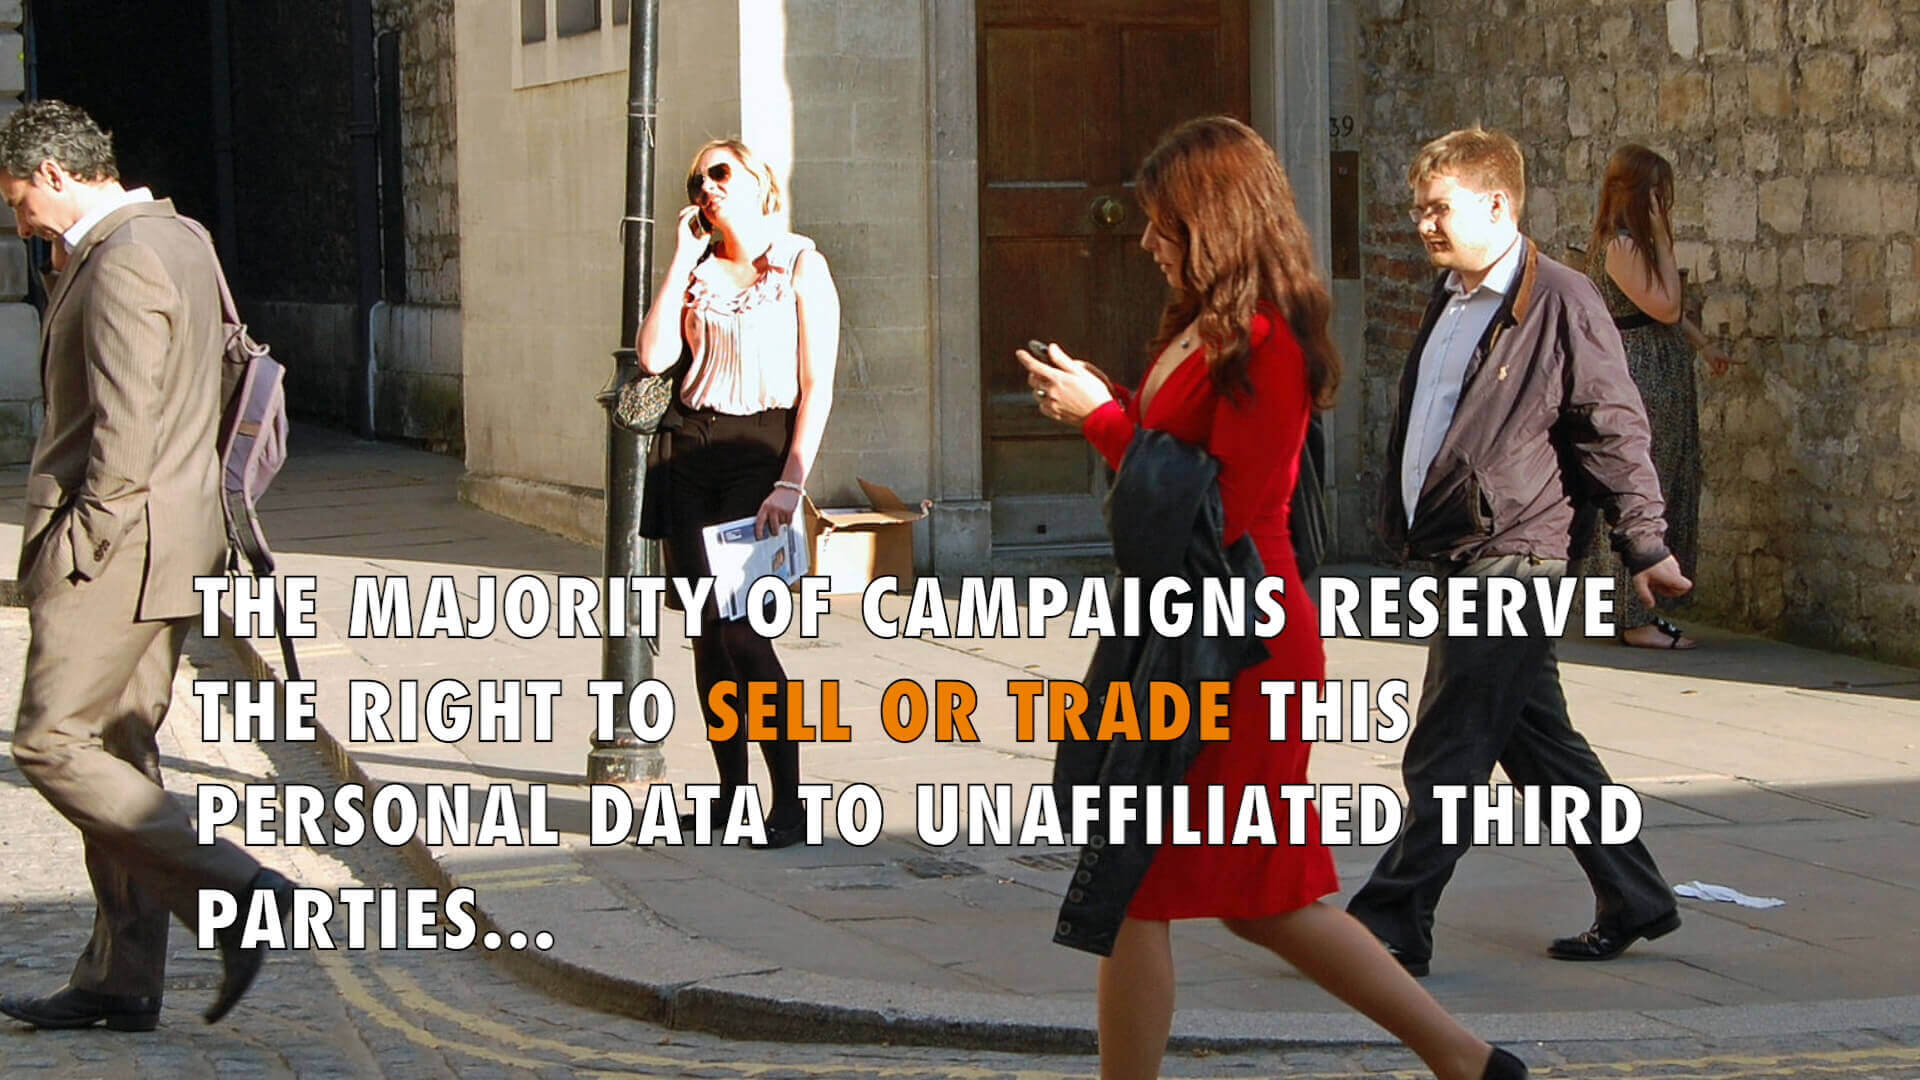 Are political campaigns protecting donor privacy?